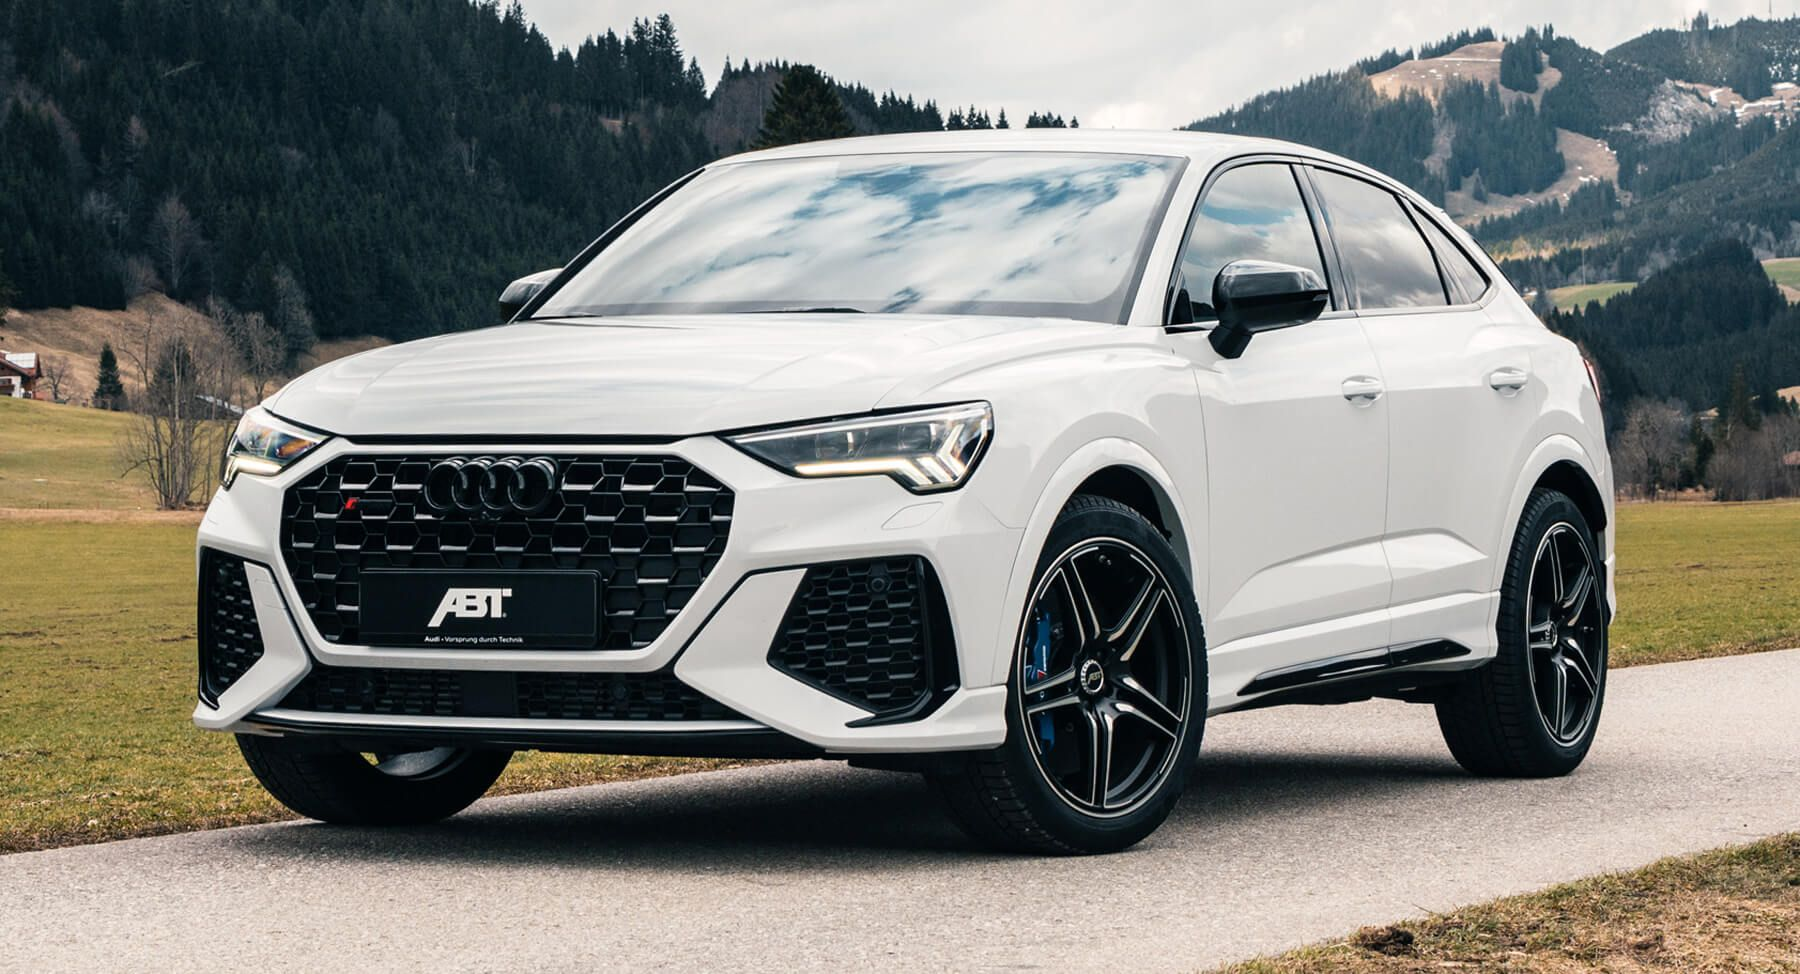 2020 Audi Rs Q3 Sportback Gets Visited By Abt S Tuning Spirit Abt Audi Audirsq3 Tuning Cars Carsofinstagram Carporn Carlifestyle In 2020 Audi Rs Audi Audi Rsq3